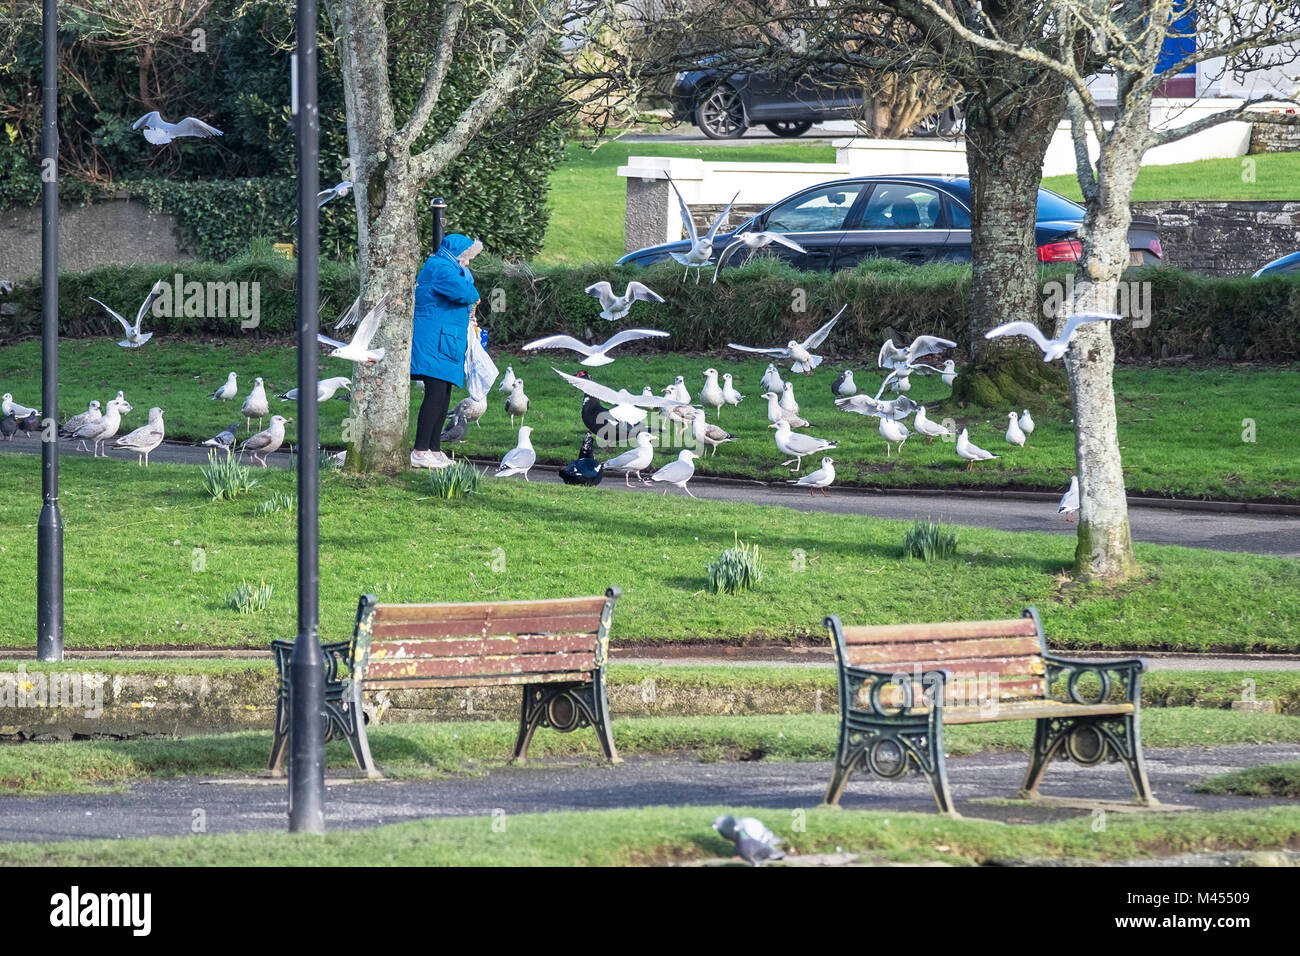 A woman feeding various types of seagulls in Trenance Park in Newquay Cornwall. - Stock Image